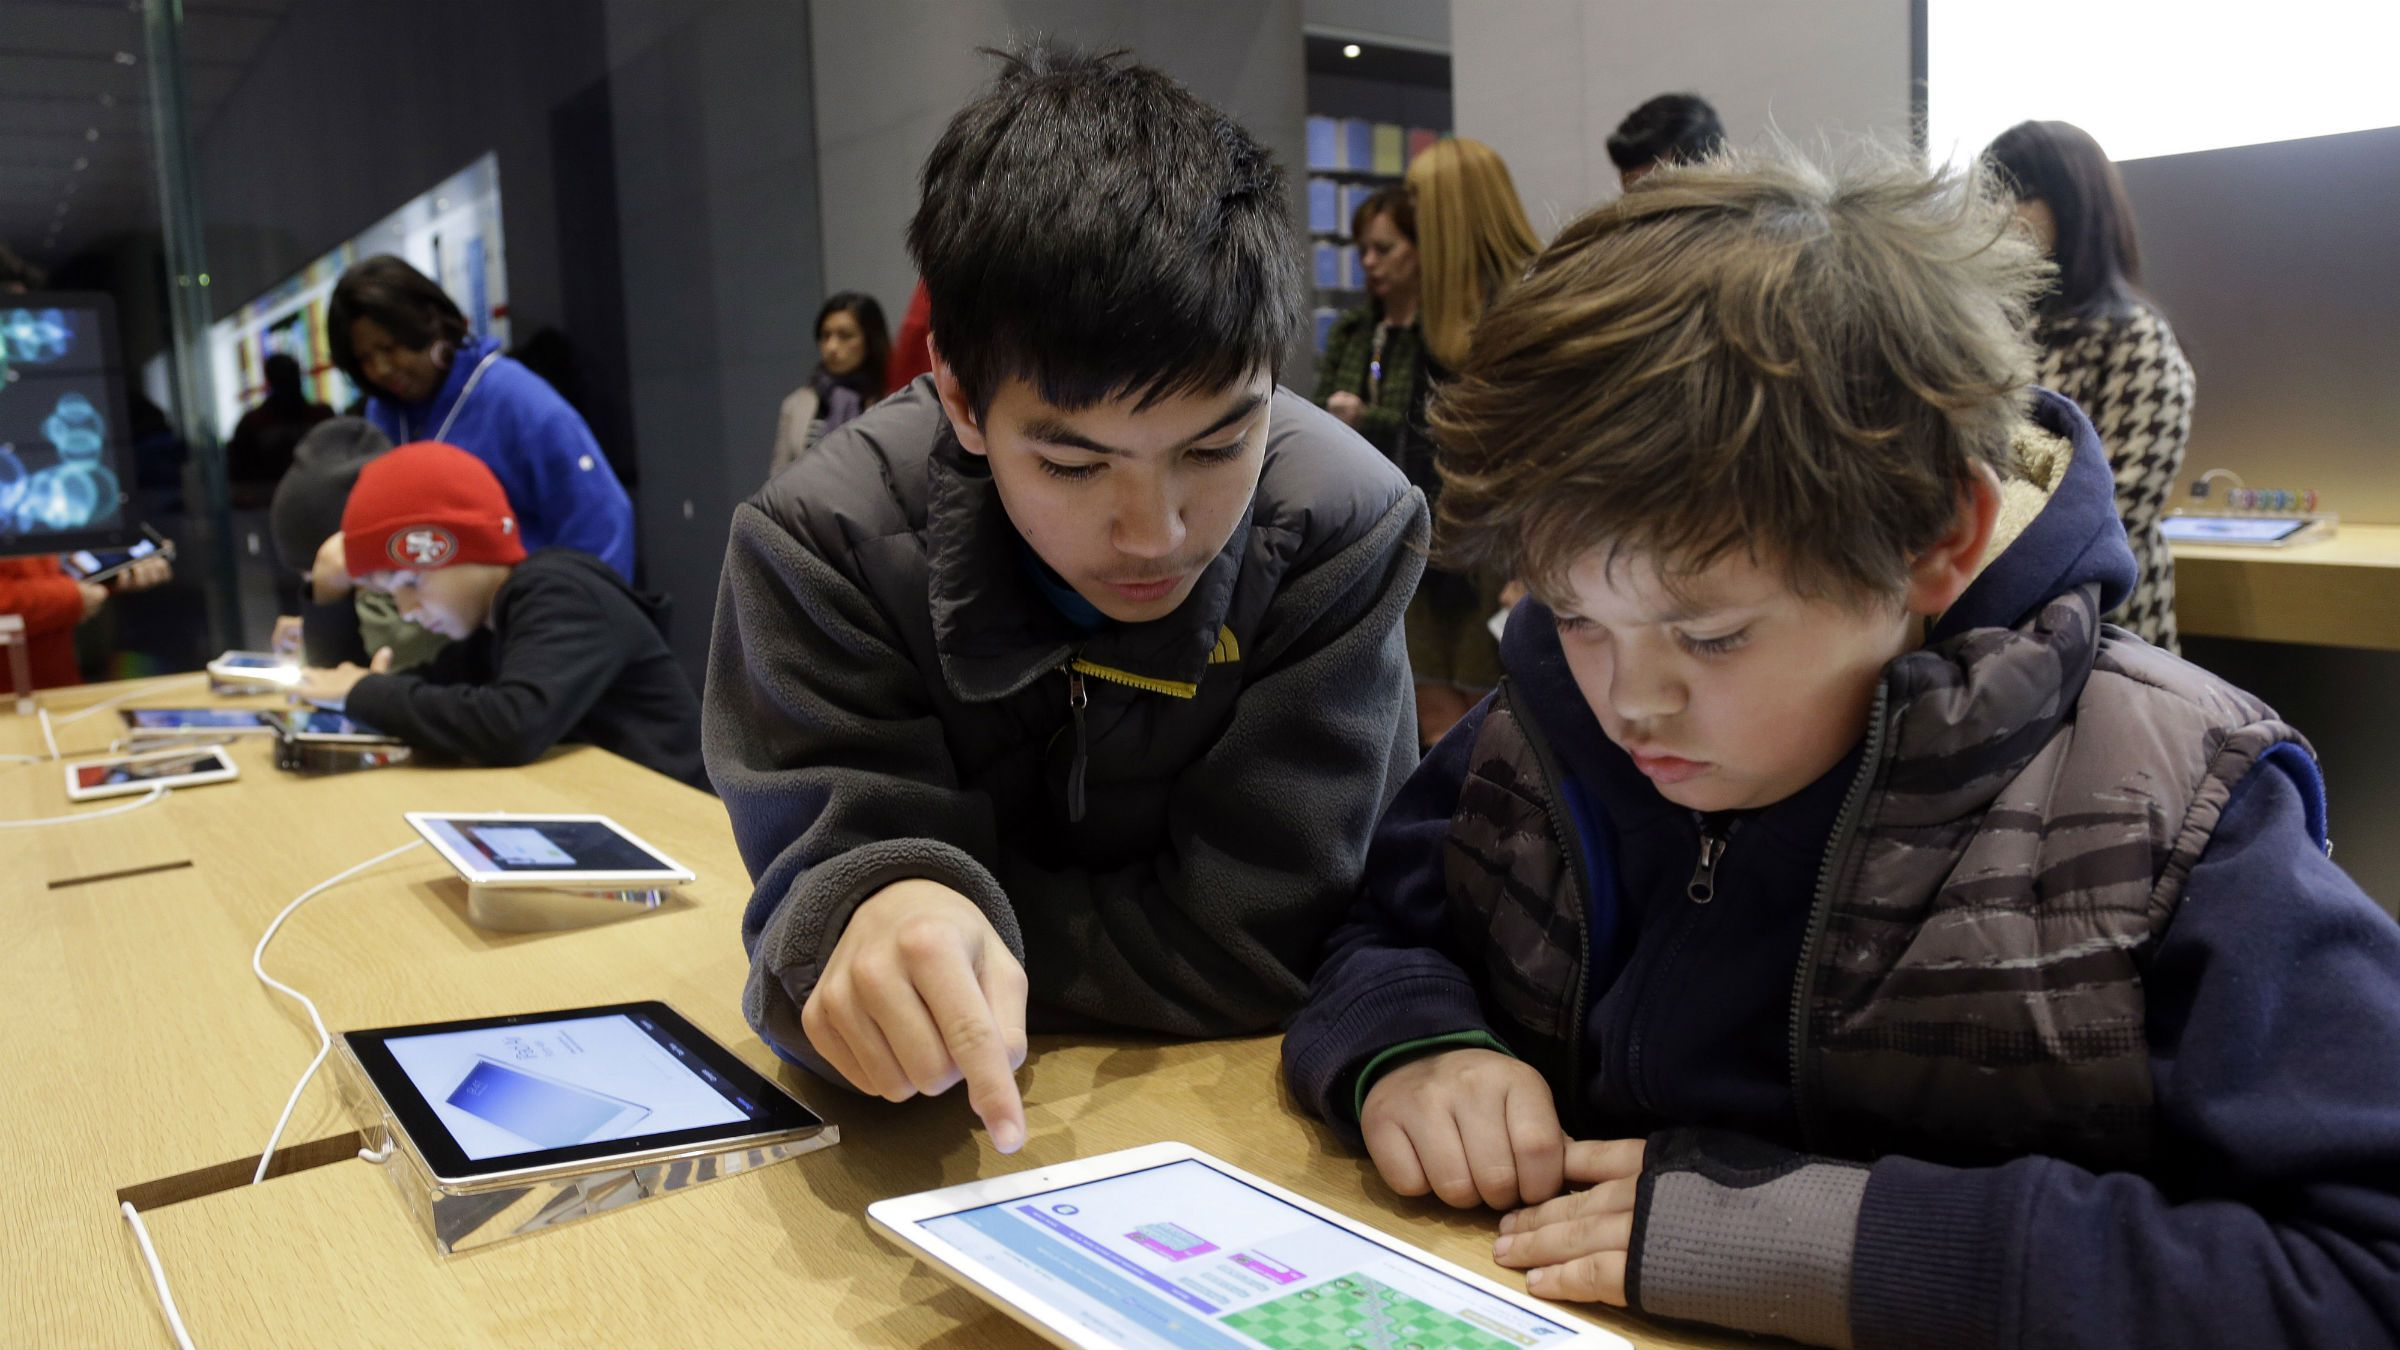 Matthew Triska, 13, center, helps Alex Fester, 10, to build code using an iPad at a youth workshop at the Apple store on Wednesday, Dec. 11, 2013, in Stanford, Calif. Apple stores nationwide were participating in computer science education week Wednesday, part of a joint effort with code.org to teach children the basics of coding. (AP Photo/Marcio Jose Sanchez)